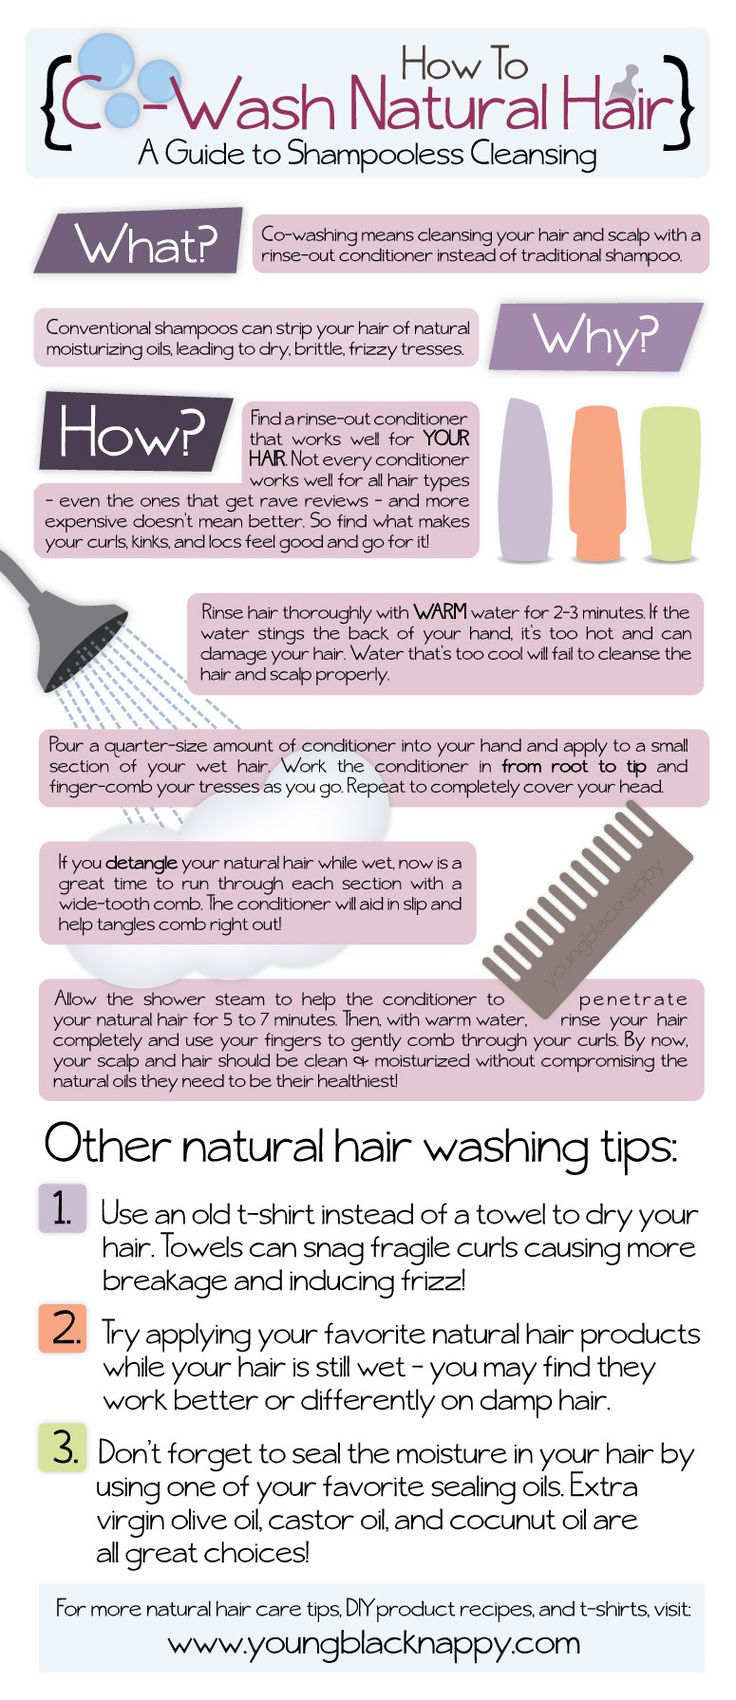 Learn how to co-wash natural hair.